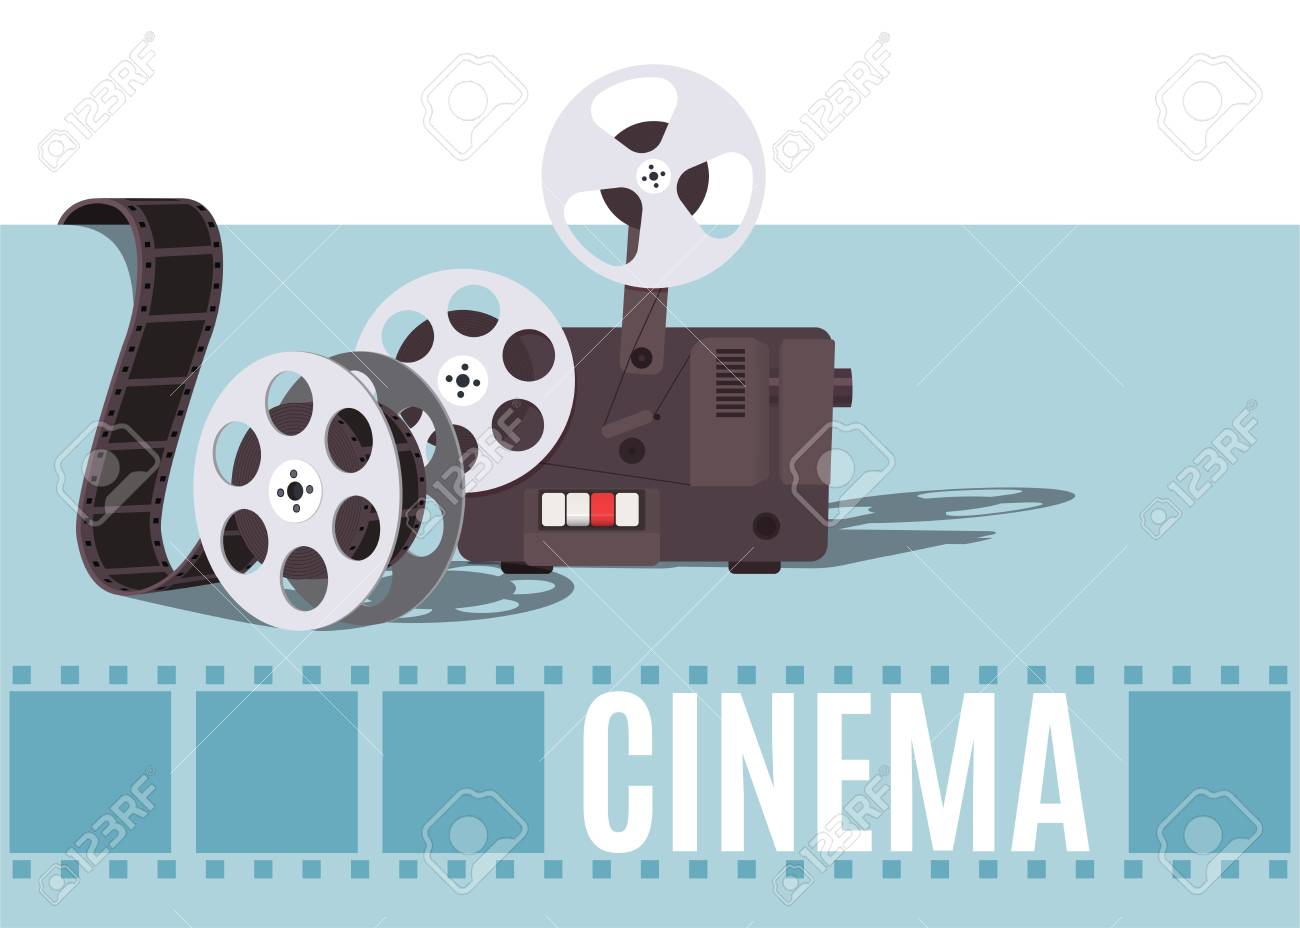 Old Cinema Projector With Movie Reel Template For Banner Flyer Or Poster Stock